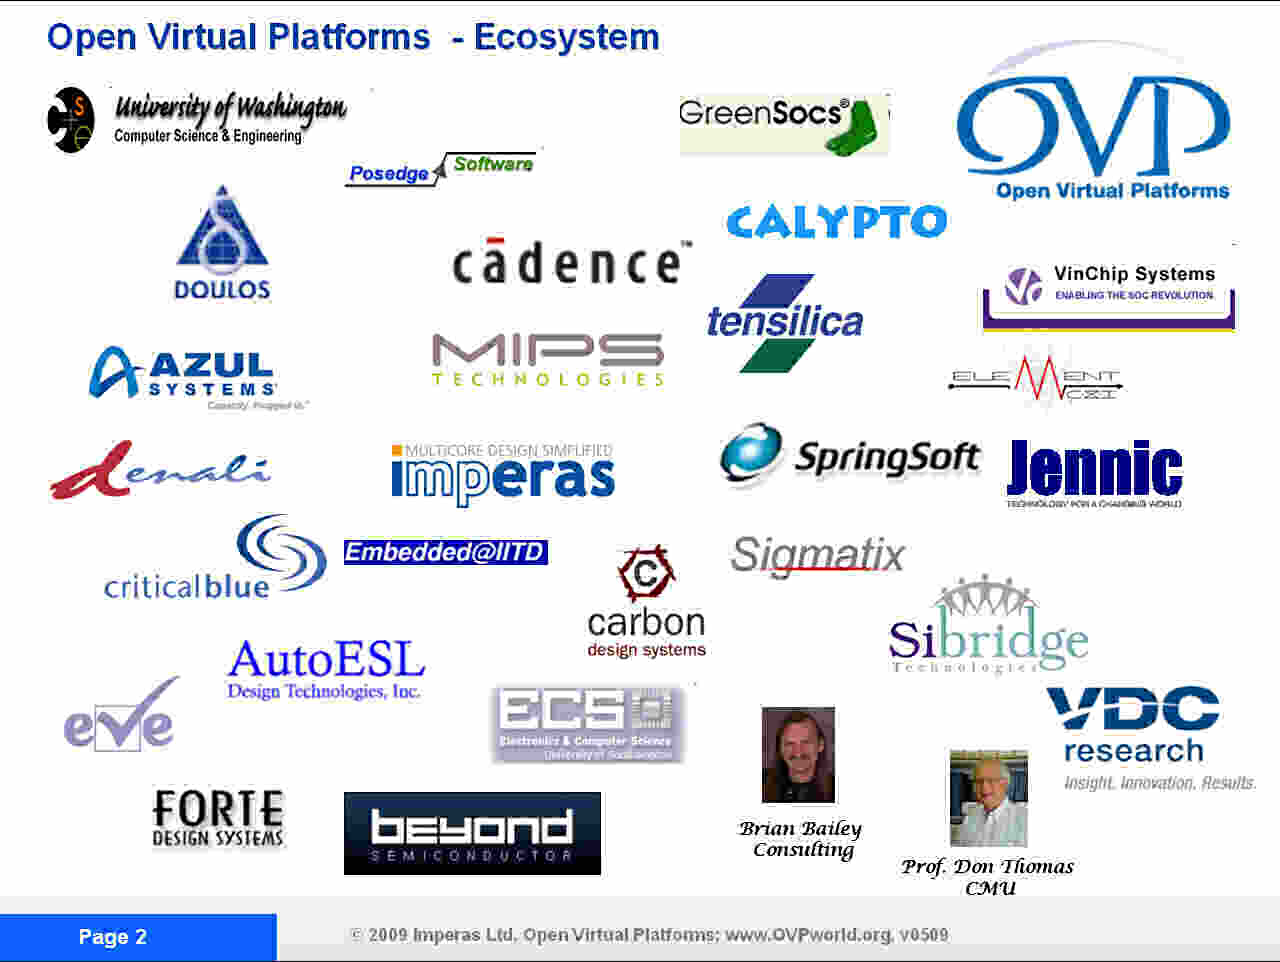 graphic: OVP a growing ecosystem is developing...